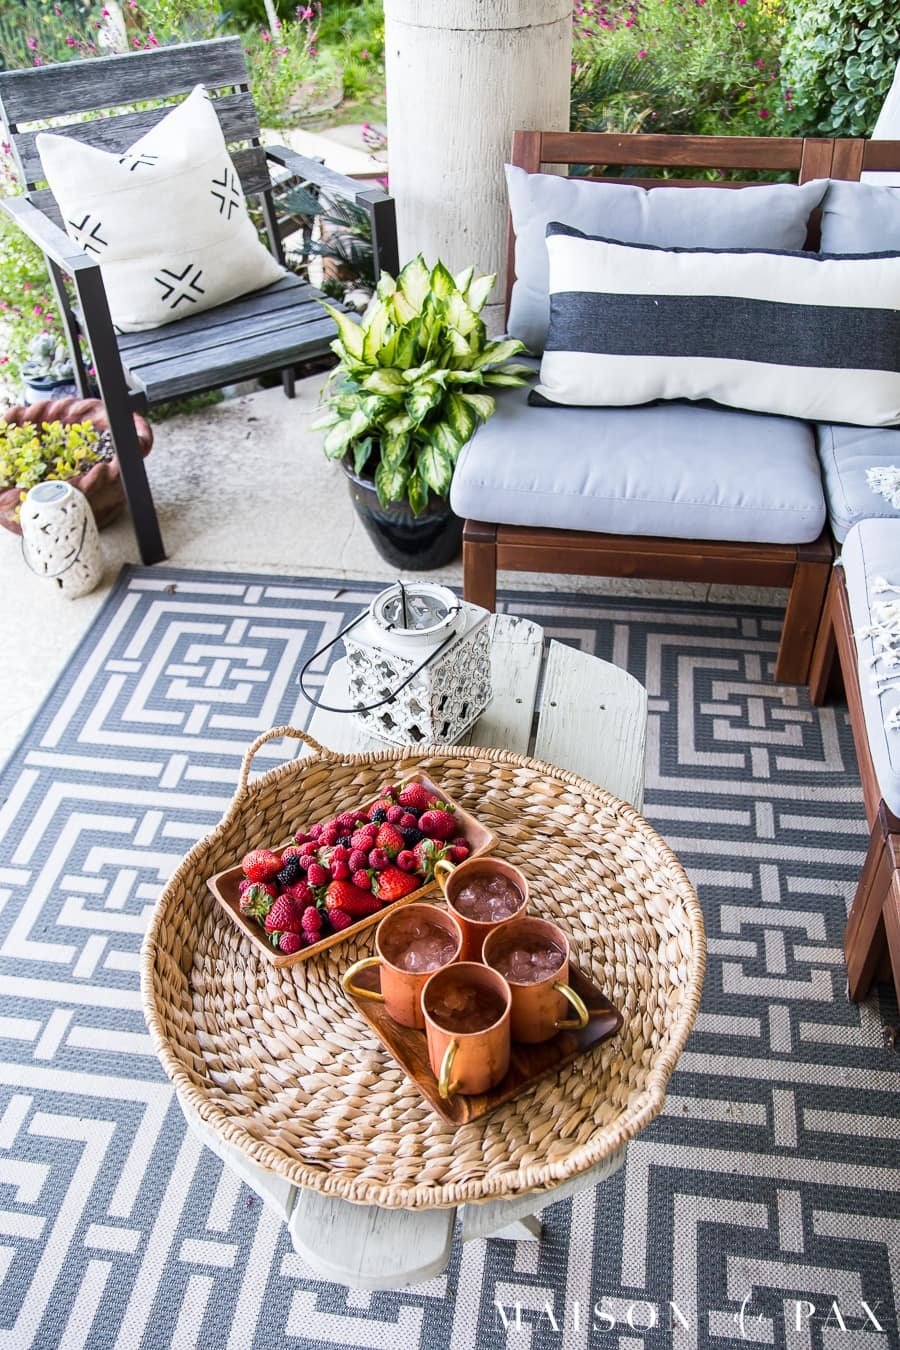 Summer Porch Decor Ideas: Ferns and Succulents - Maison de Pax on Patio Decor Ideas id=54402